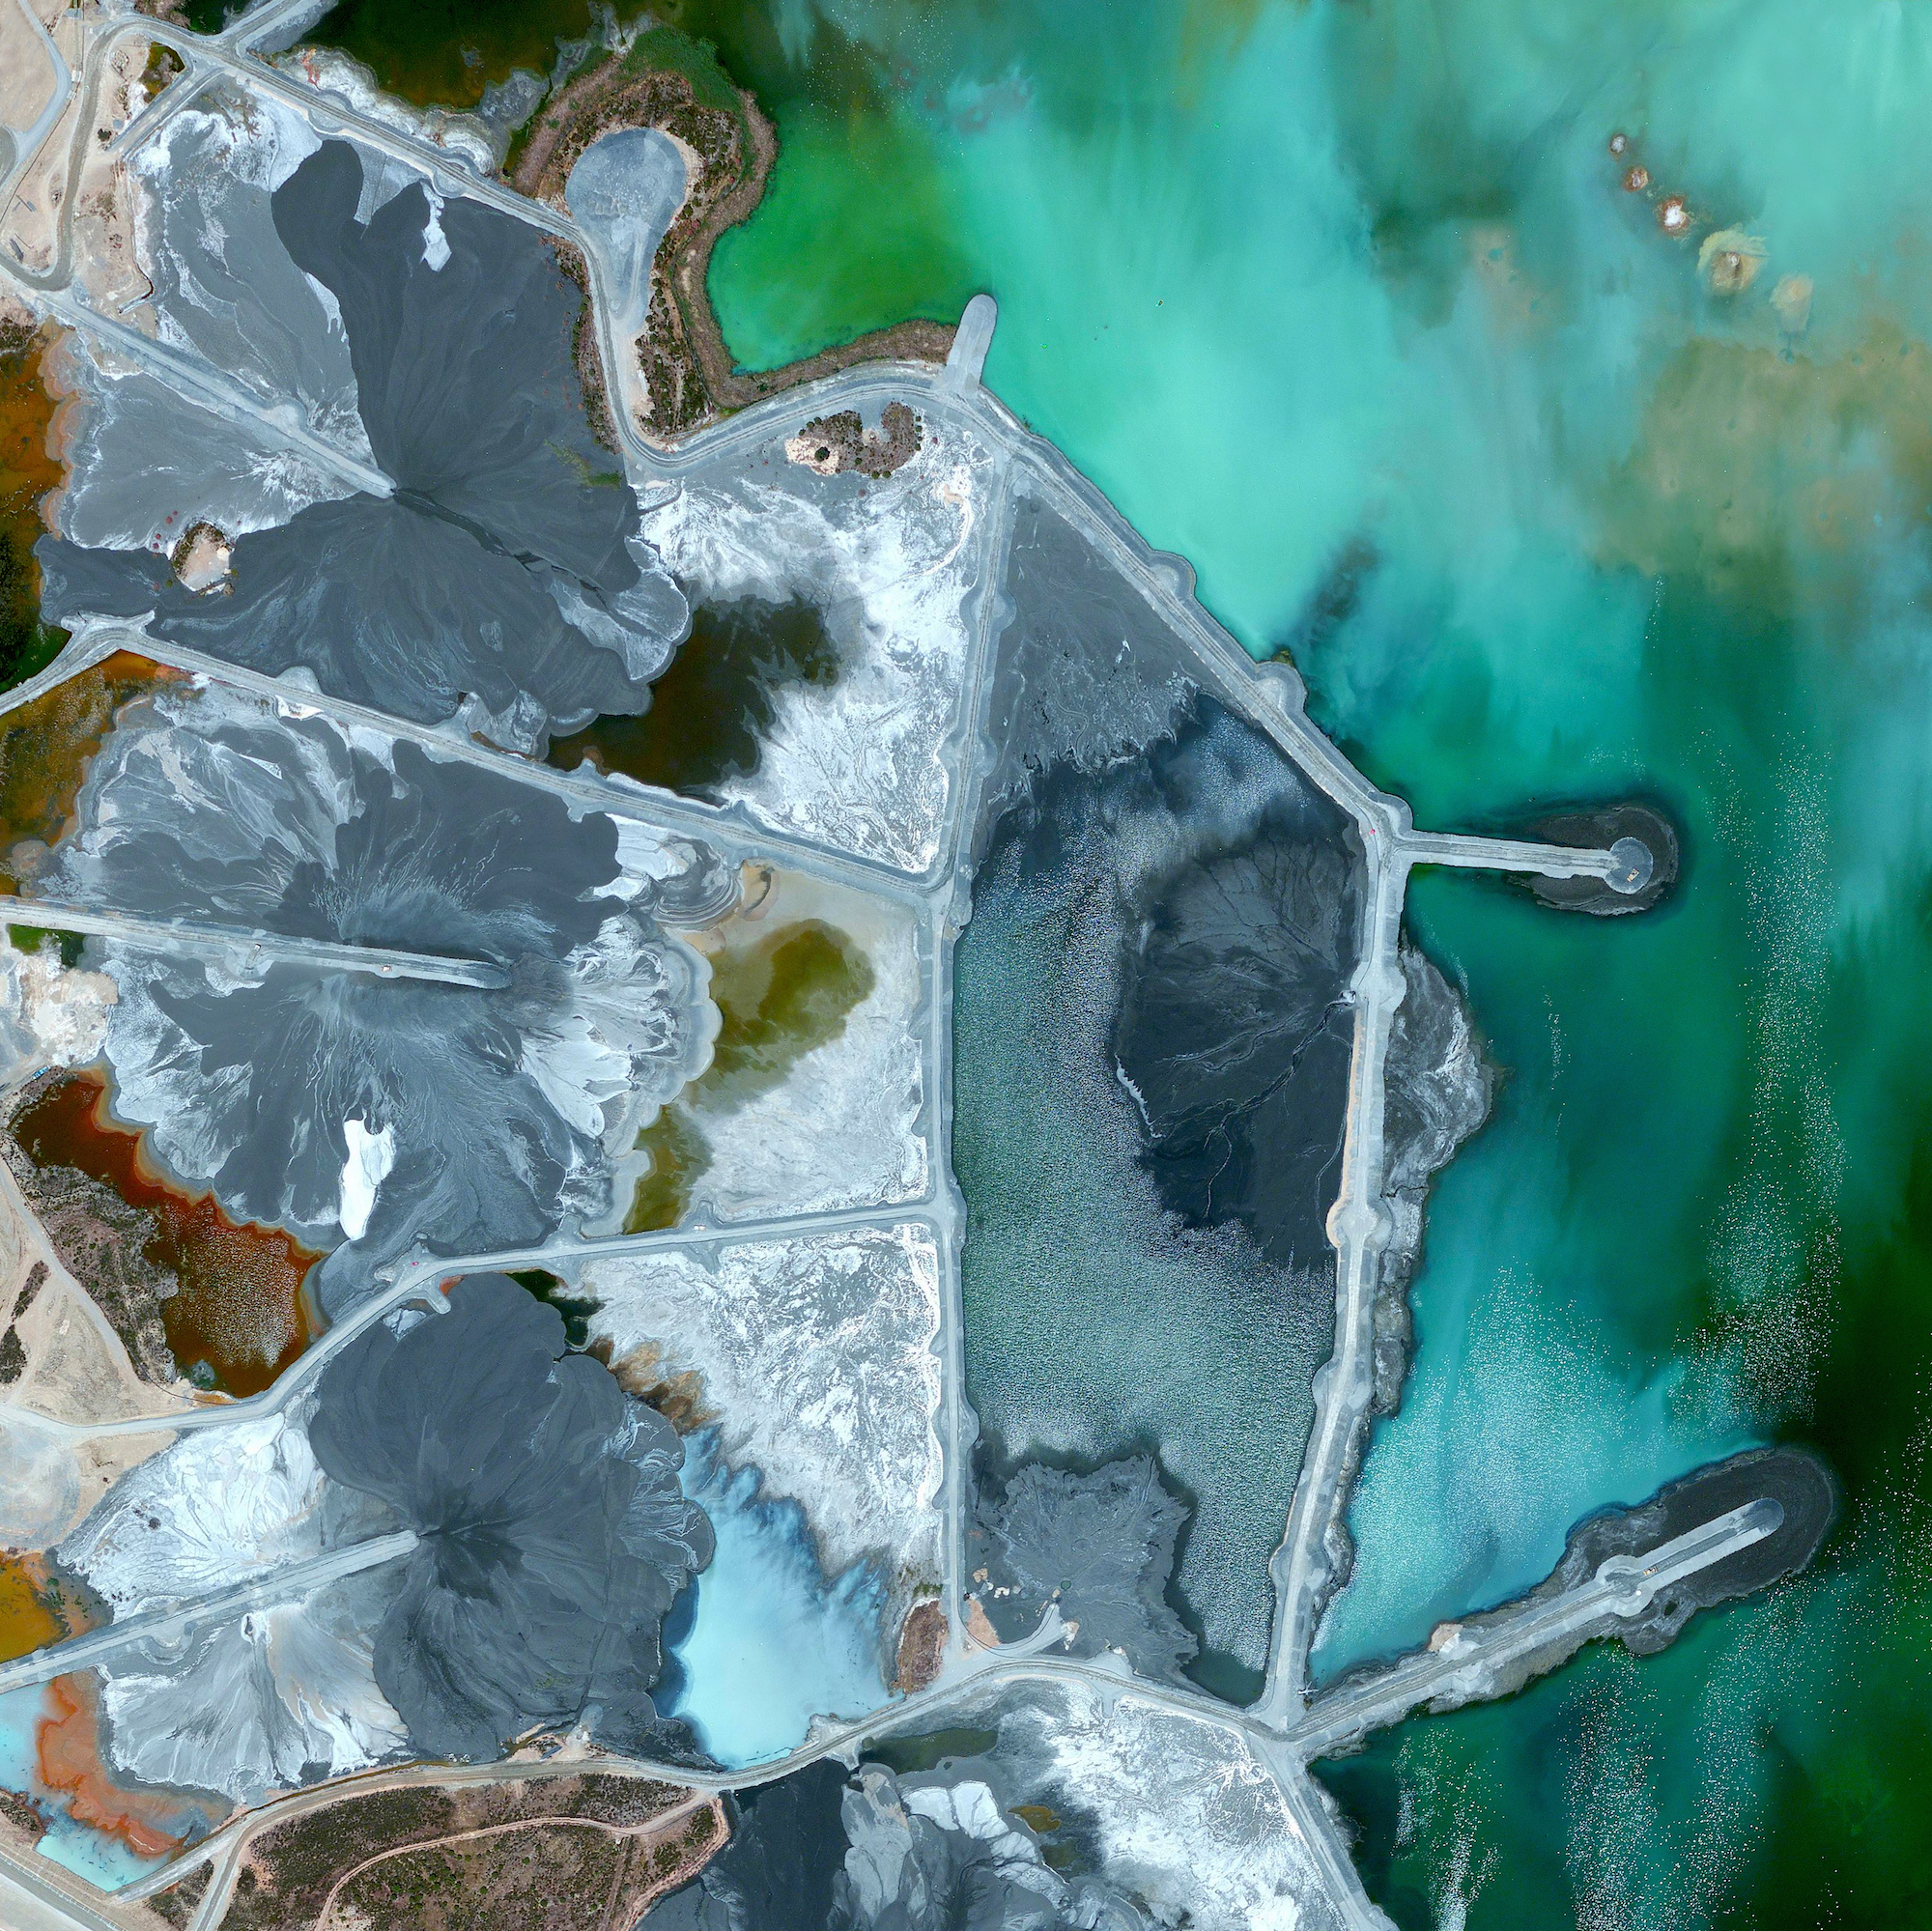 6/3/2016   Neves-Corvo Mine   Castro Verde Municipality, Portugal  37°34′23″N 7°58′15″W    Waste ponds are seen at the Neves-Corvo Mine in the Castro Verde Municipality in Portugal. Zinc and copper and the primary resources extracted from the mine and the byproducts of that extraction is sent to these basins three kilometers away. Typically, once waste materials are pumped into a tailings pond, they are mixed with water to create a sloppy form of mud known as slurry. The slurry is then pumped through magnetic separation chambers to extract usable ore and increase the mine's total output.